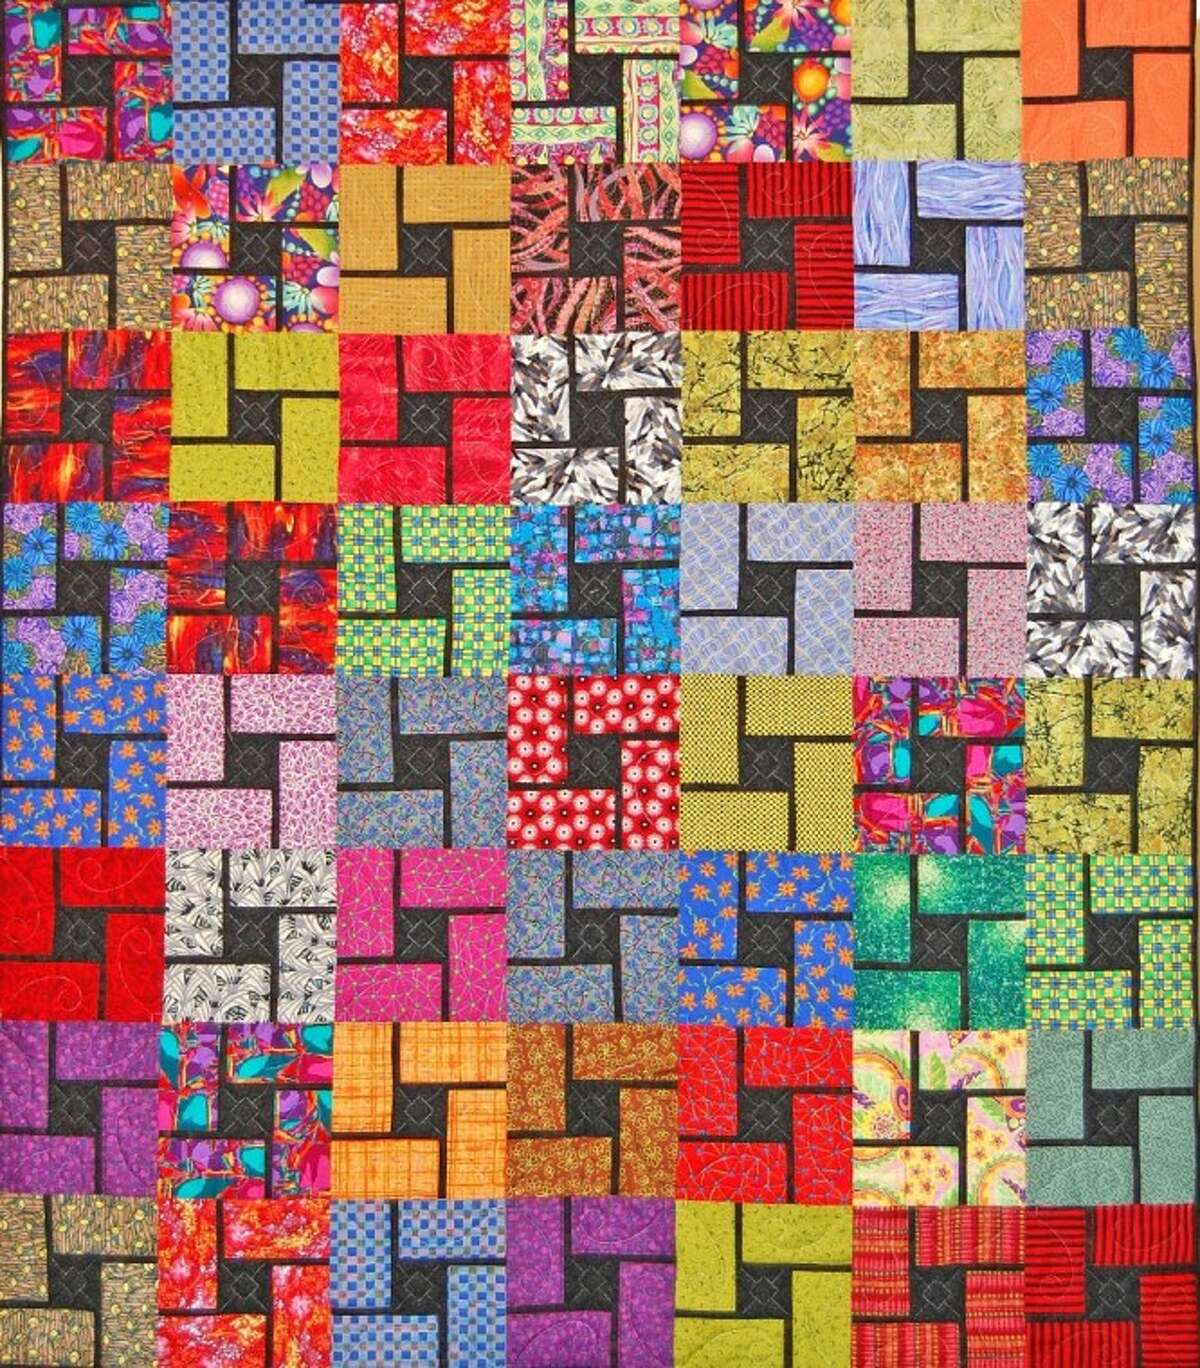 Cogs, one of the quilts to be auctioned at the Texas Mennonite Sale & Auction for World Relief on Nov. 10.